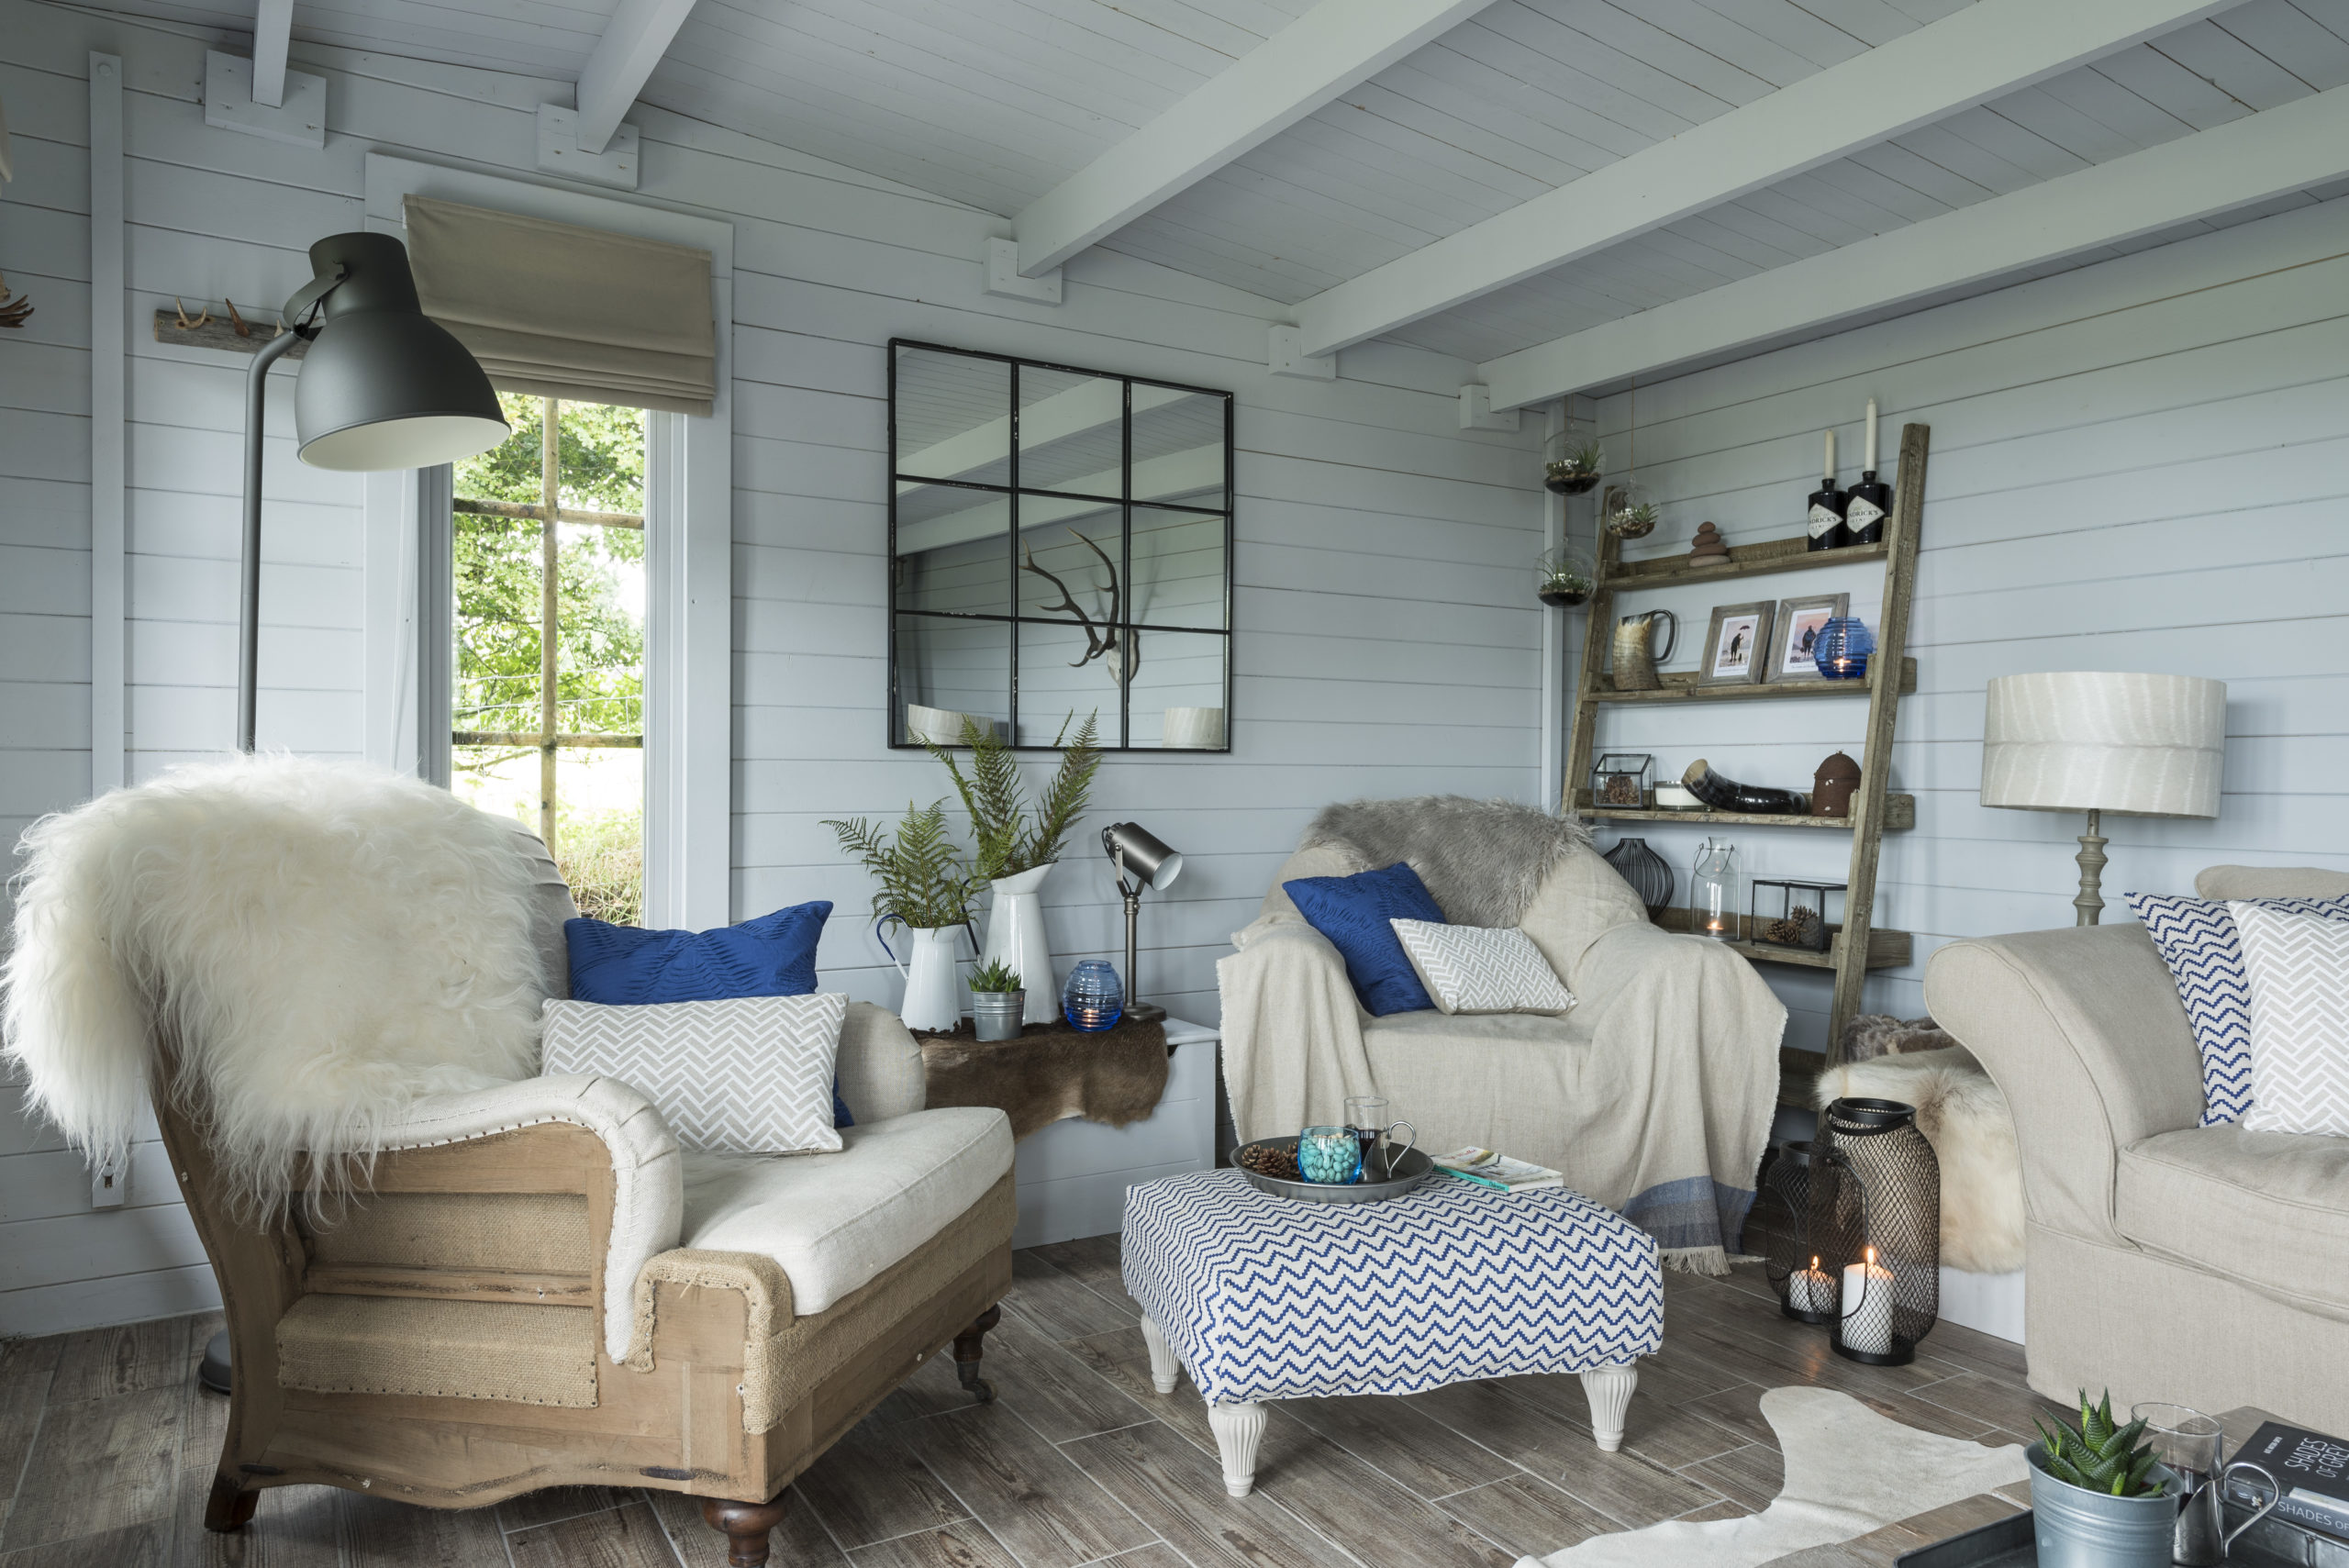 Scandinavian design nordic style summerhouse designed by Amelia Wilson Interiors